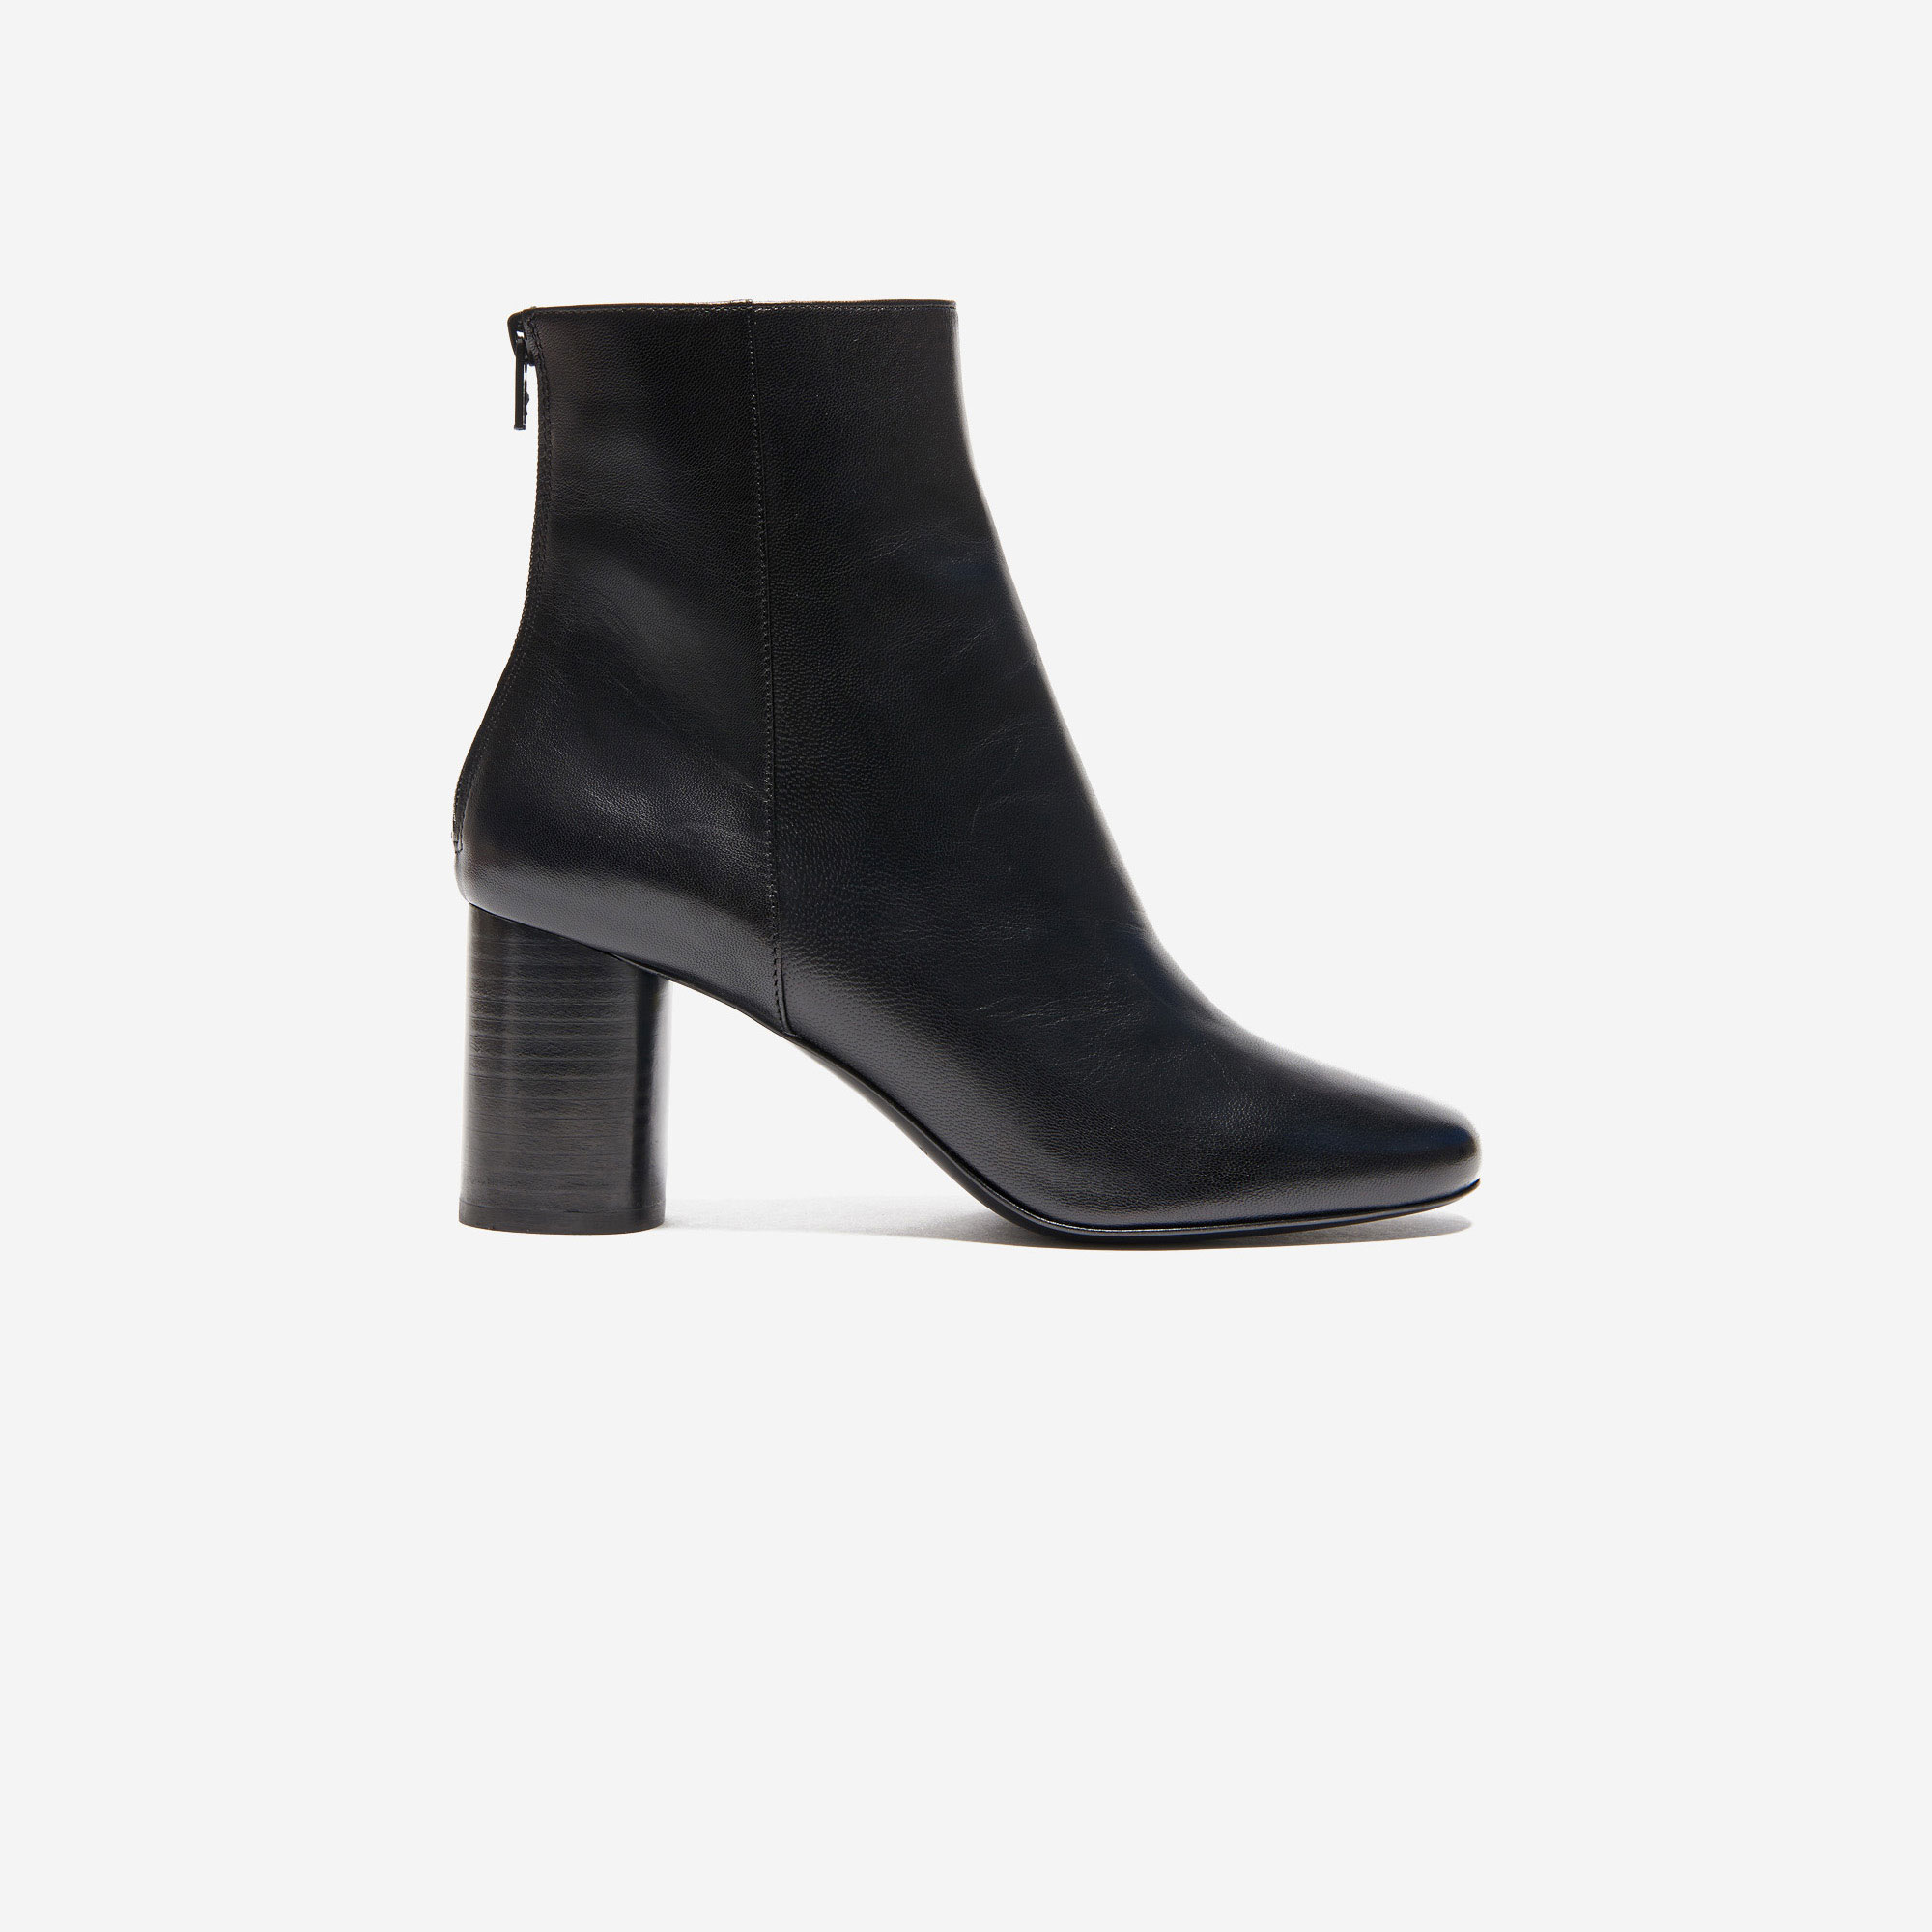 Black Leather Ankle Boot - Black